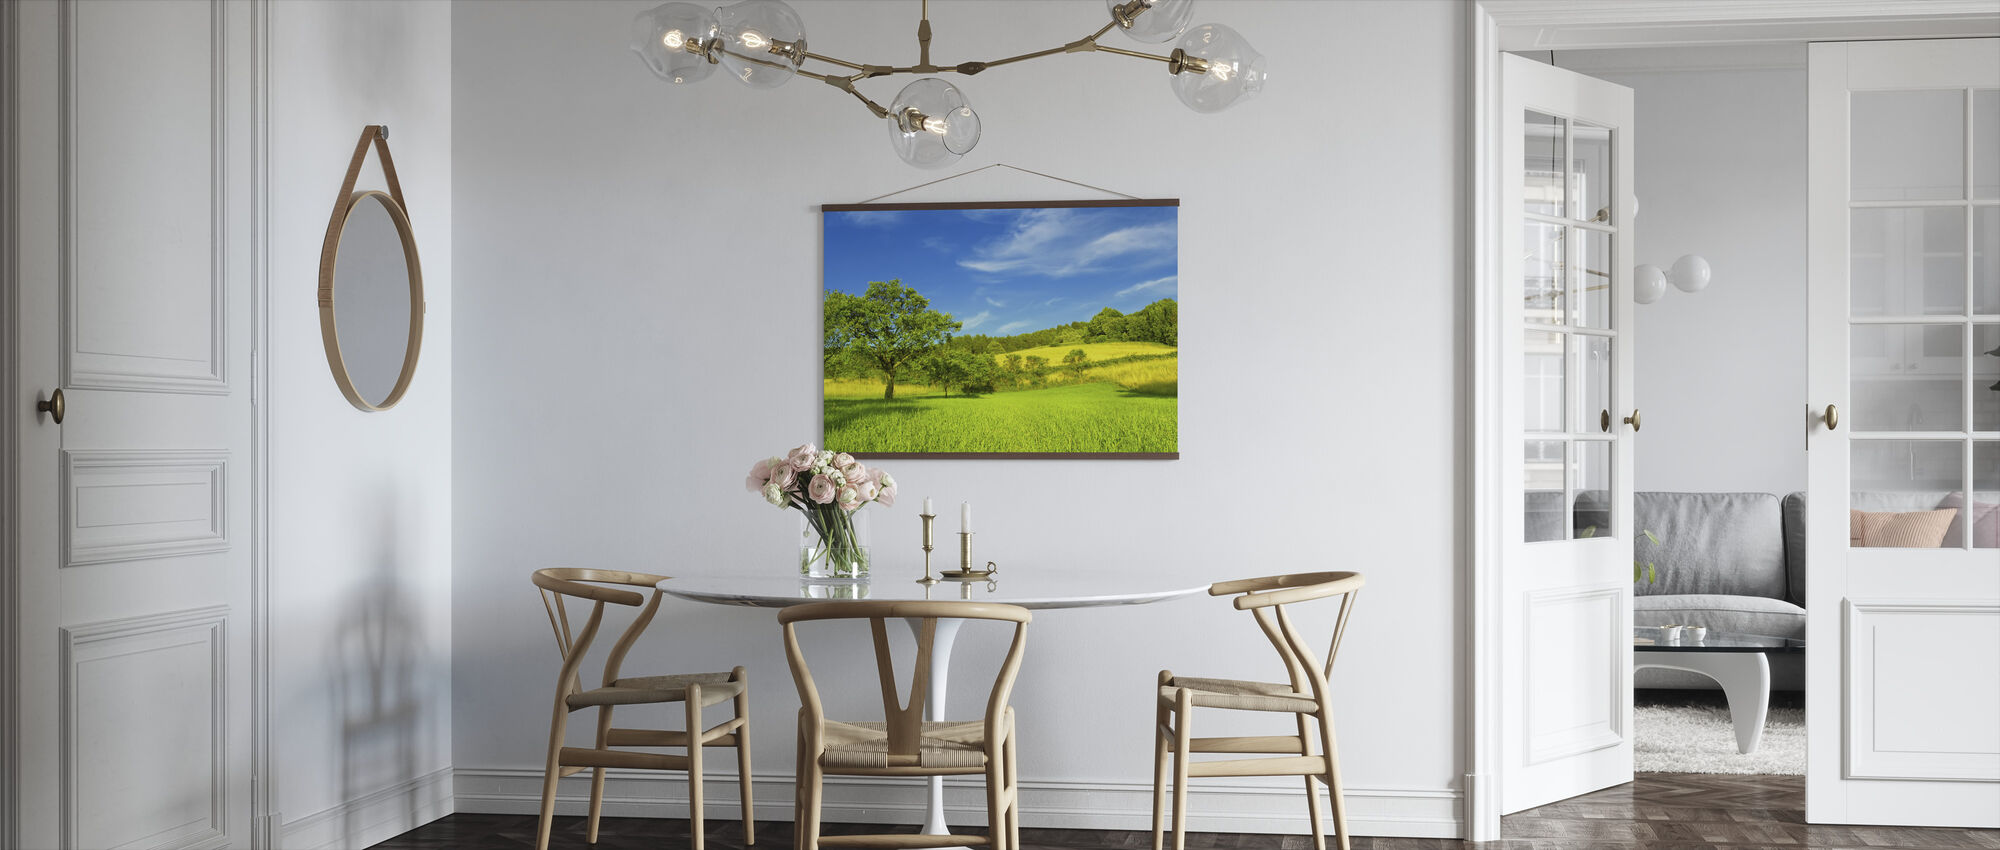 Sunny Summer Day - Poster - Kitchen